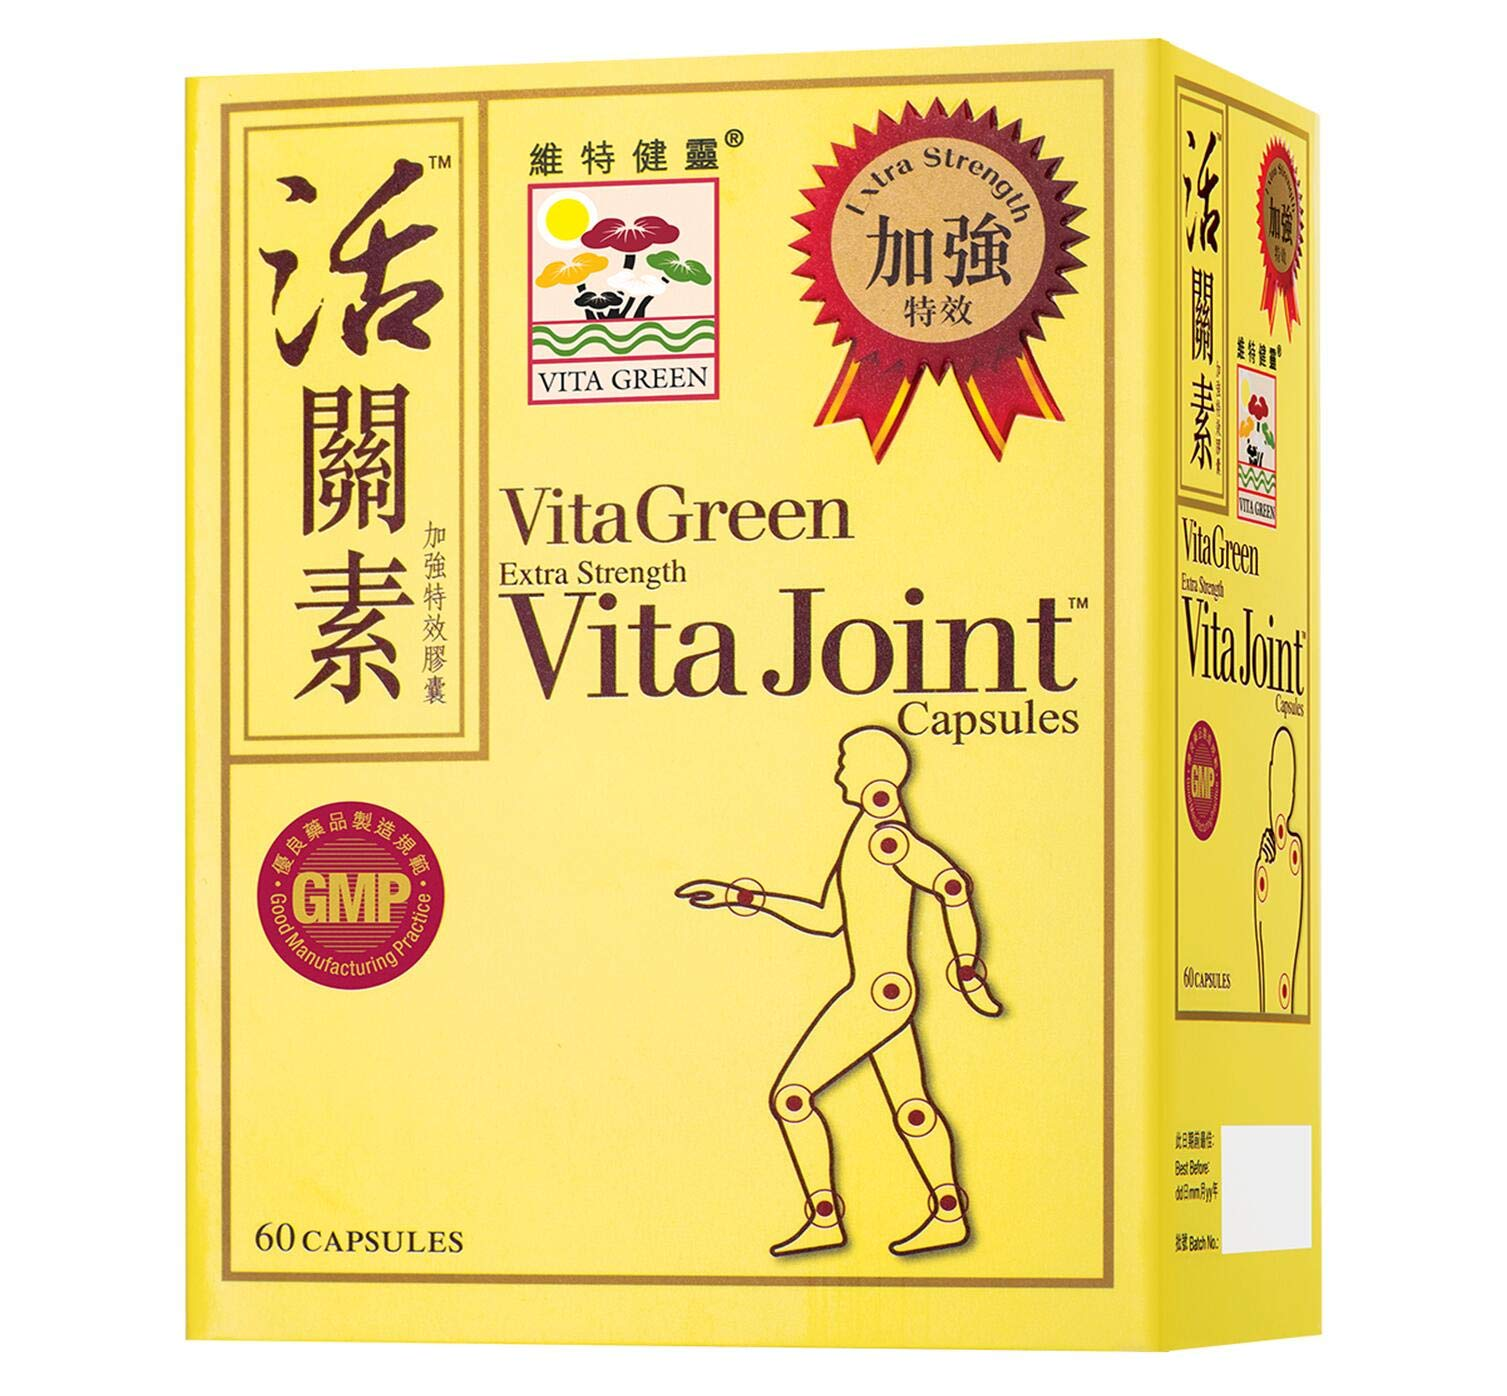 Joint Health Supplement Capsules, Natural Chinese Herbal Treatment Relief from Discomfort Stiffness, Extra Strength Joint Mobility and Flexibility - 60 Count by Vita Green